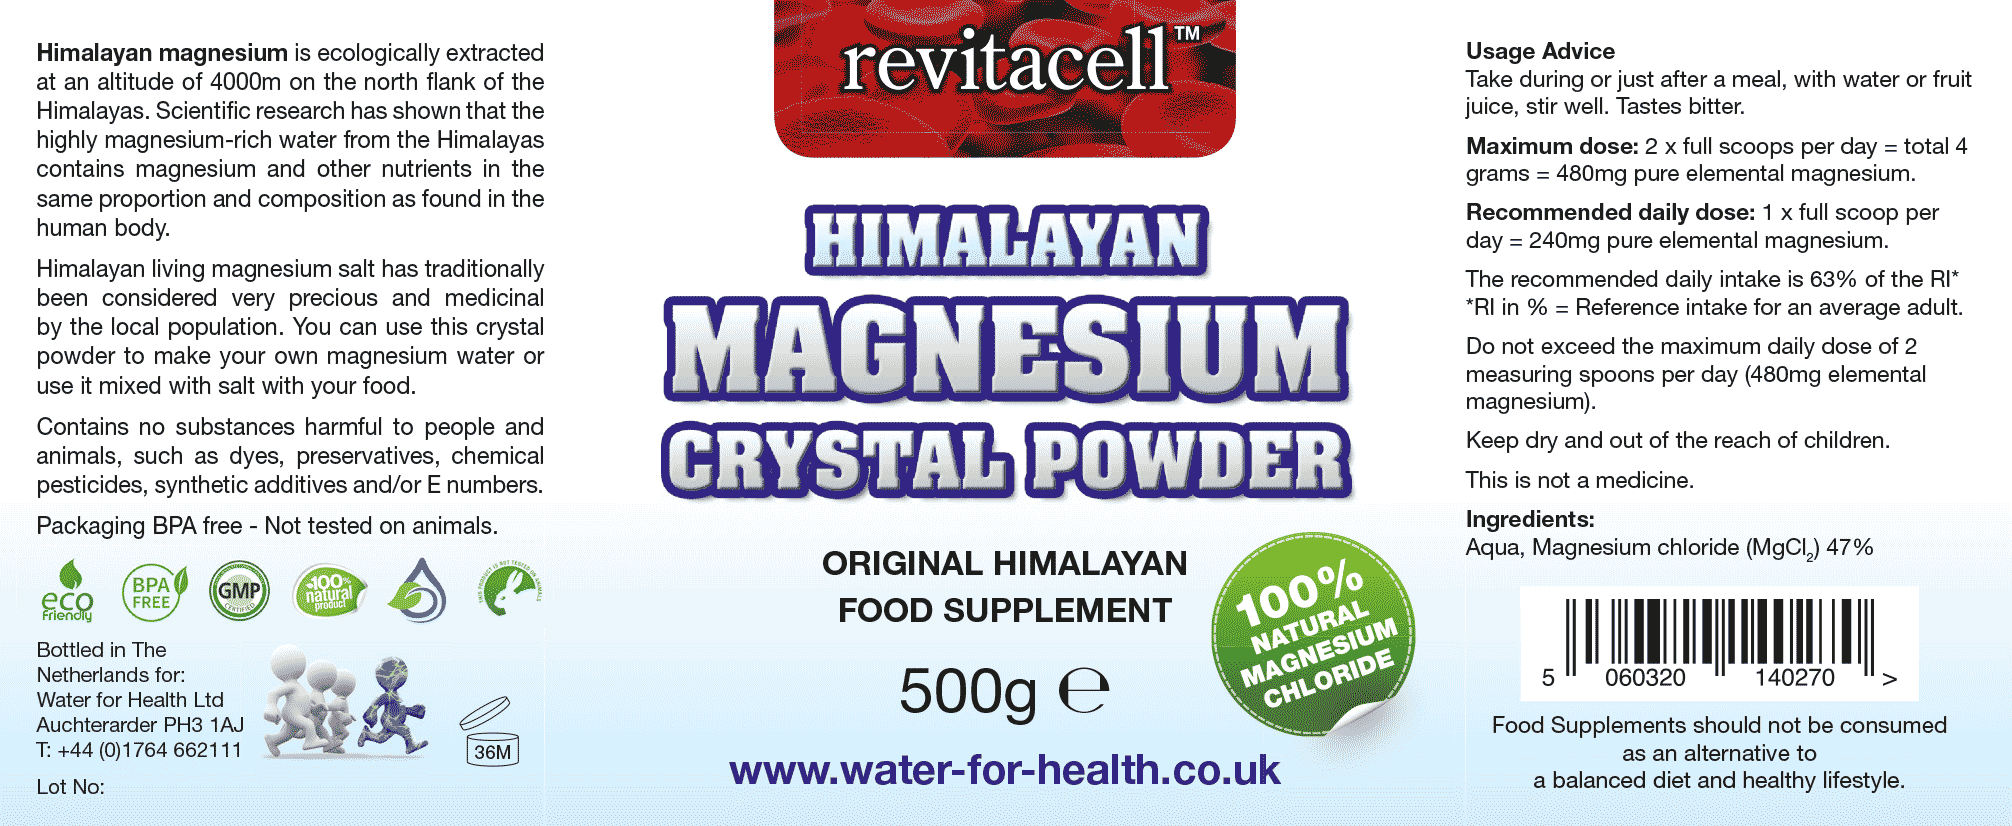 Magnesium Crystal Powder Supplement Facts